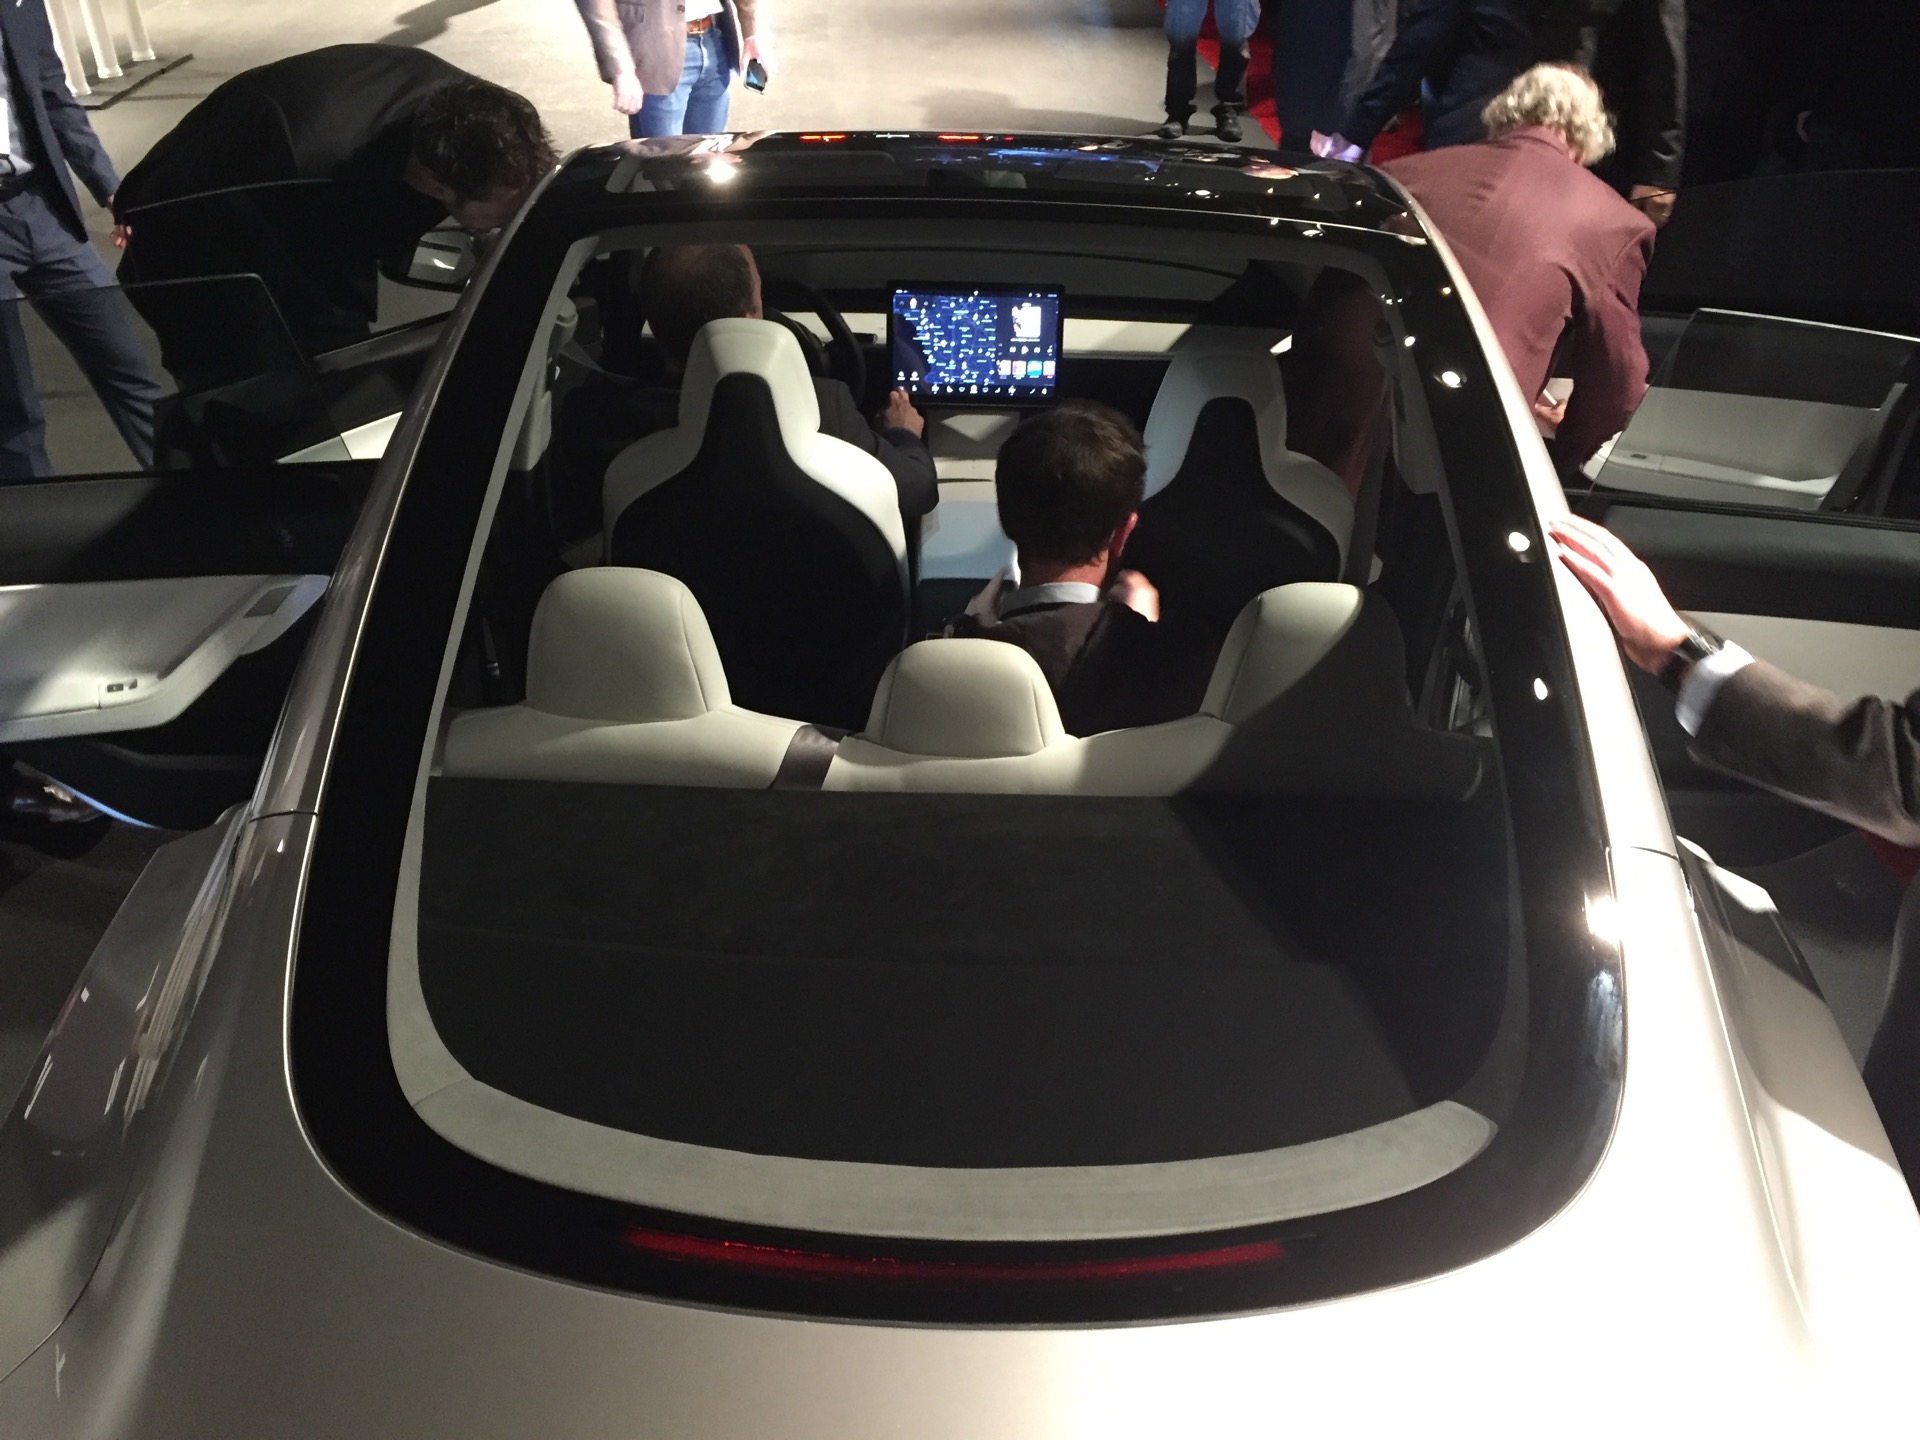 Design of tesla car - Tesla Model X Towing Model 3 Interior Mystery Electric Motorcycles Today S Car News